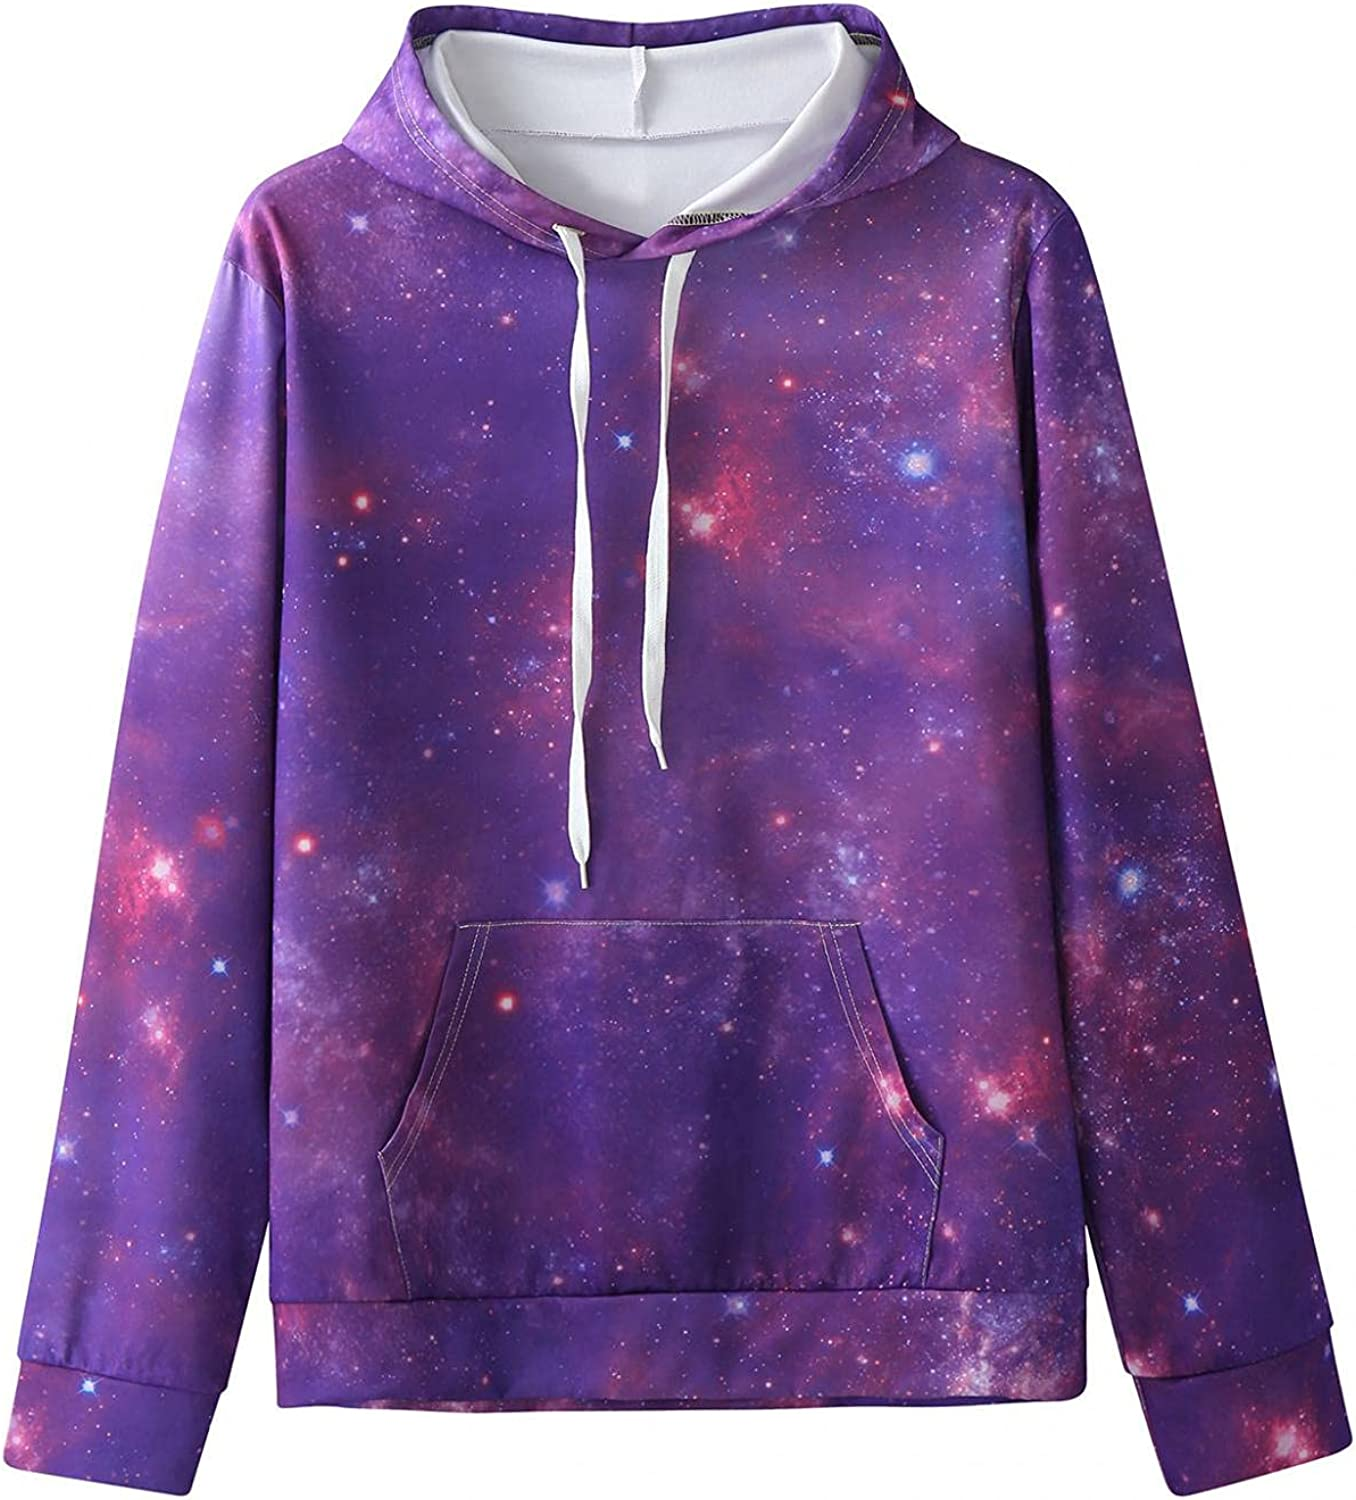 VEKDONE Unisex Regular discount Women Men Novelty Hoodies Funny Sleeves Long P National products 3D